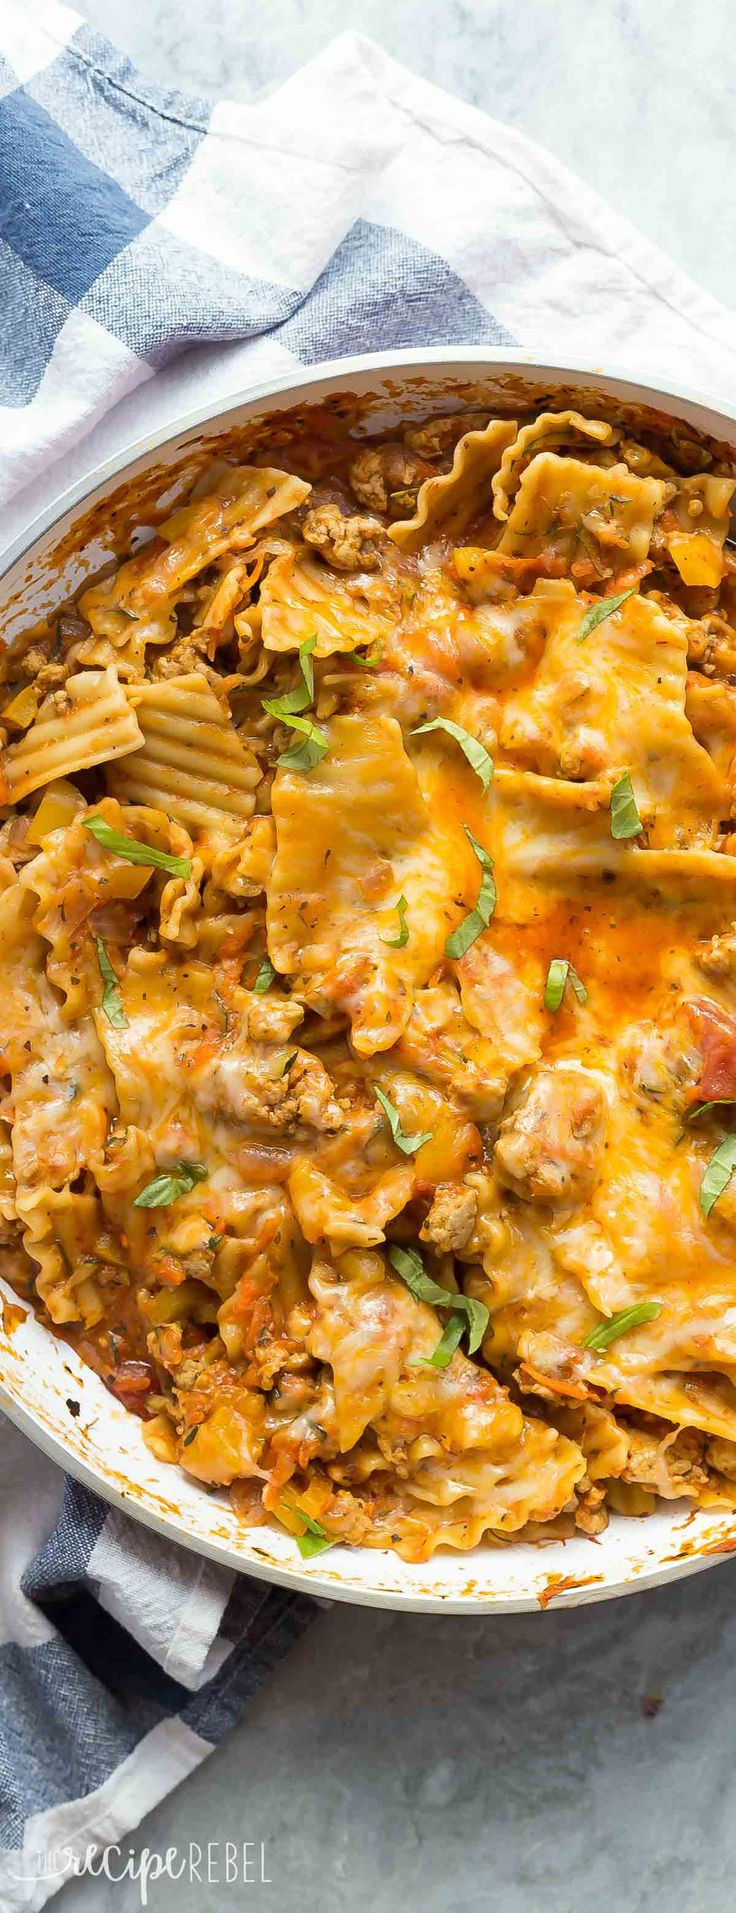 This Healthier One Pot Skillet Lasagna is loaded with sneaky veggies, ground chicken or turkey, and a homemade tomato sauce making it an easy, healthy dinner that's ready in 30 minutes! The family will never know ;)